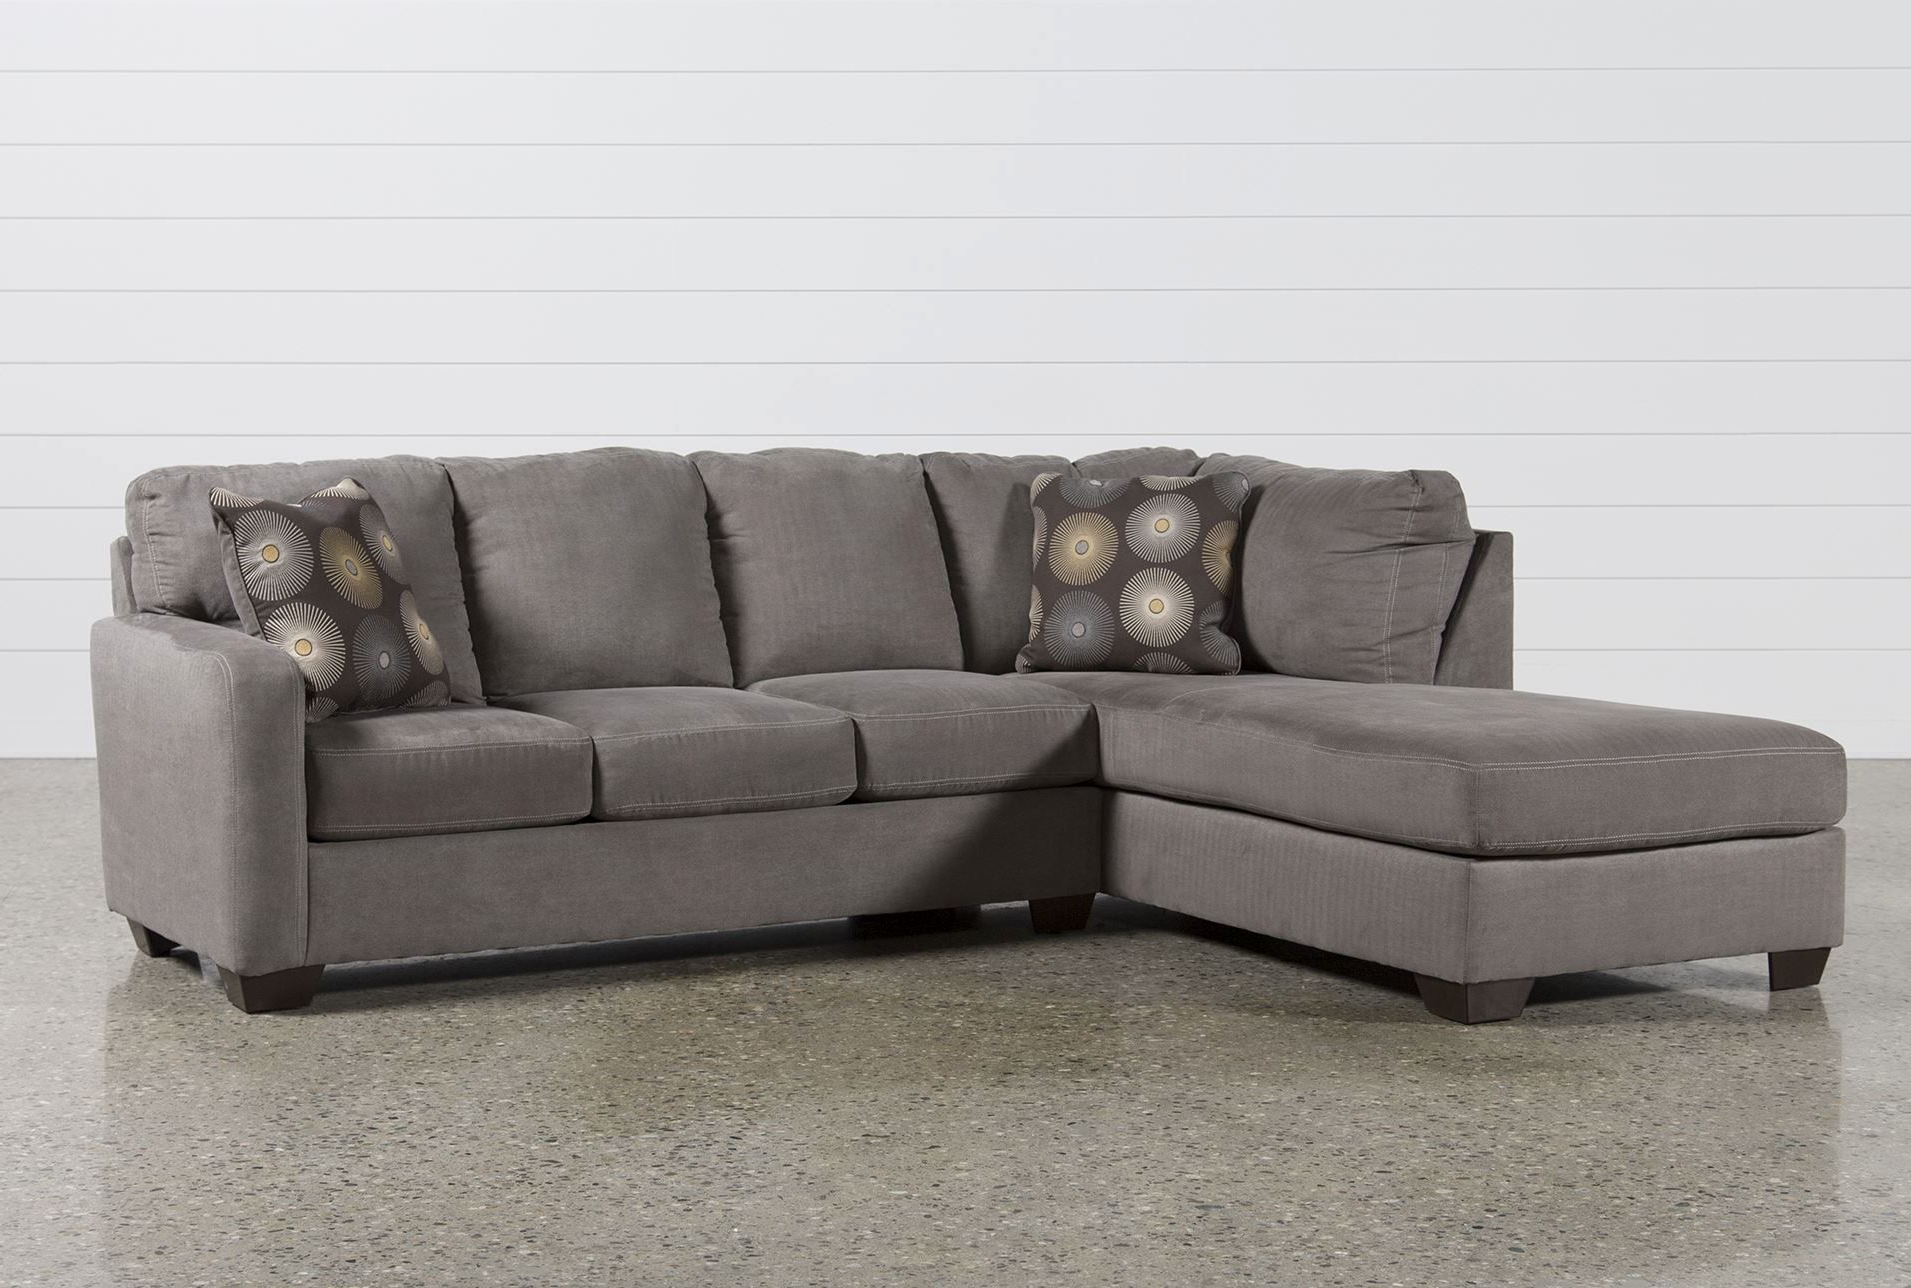 Most Current Aspen 2 Piece Sleeper Sectionals With Laf Chaise With Regard To Unique 3 Piece Sectional Sofa Microfiber 3 Piece Sectional Sofa (View 14 of 20)